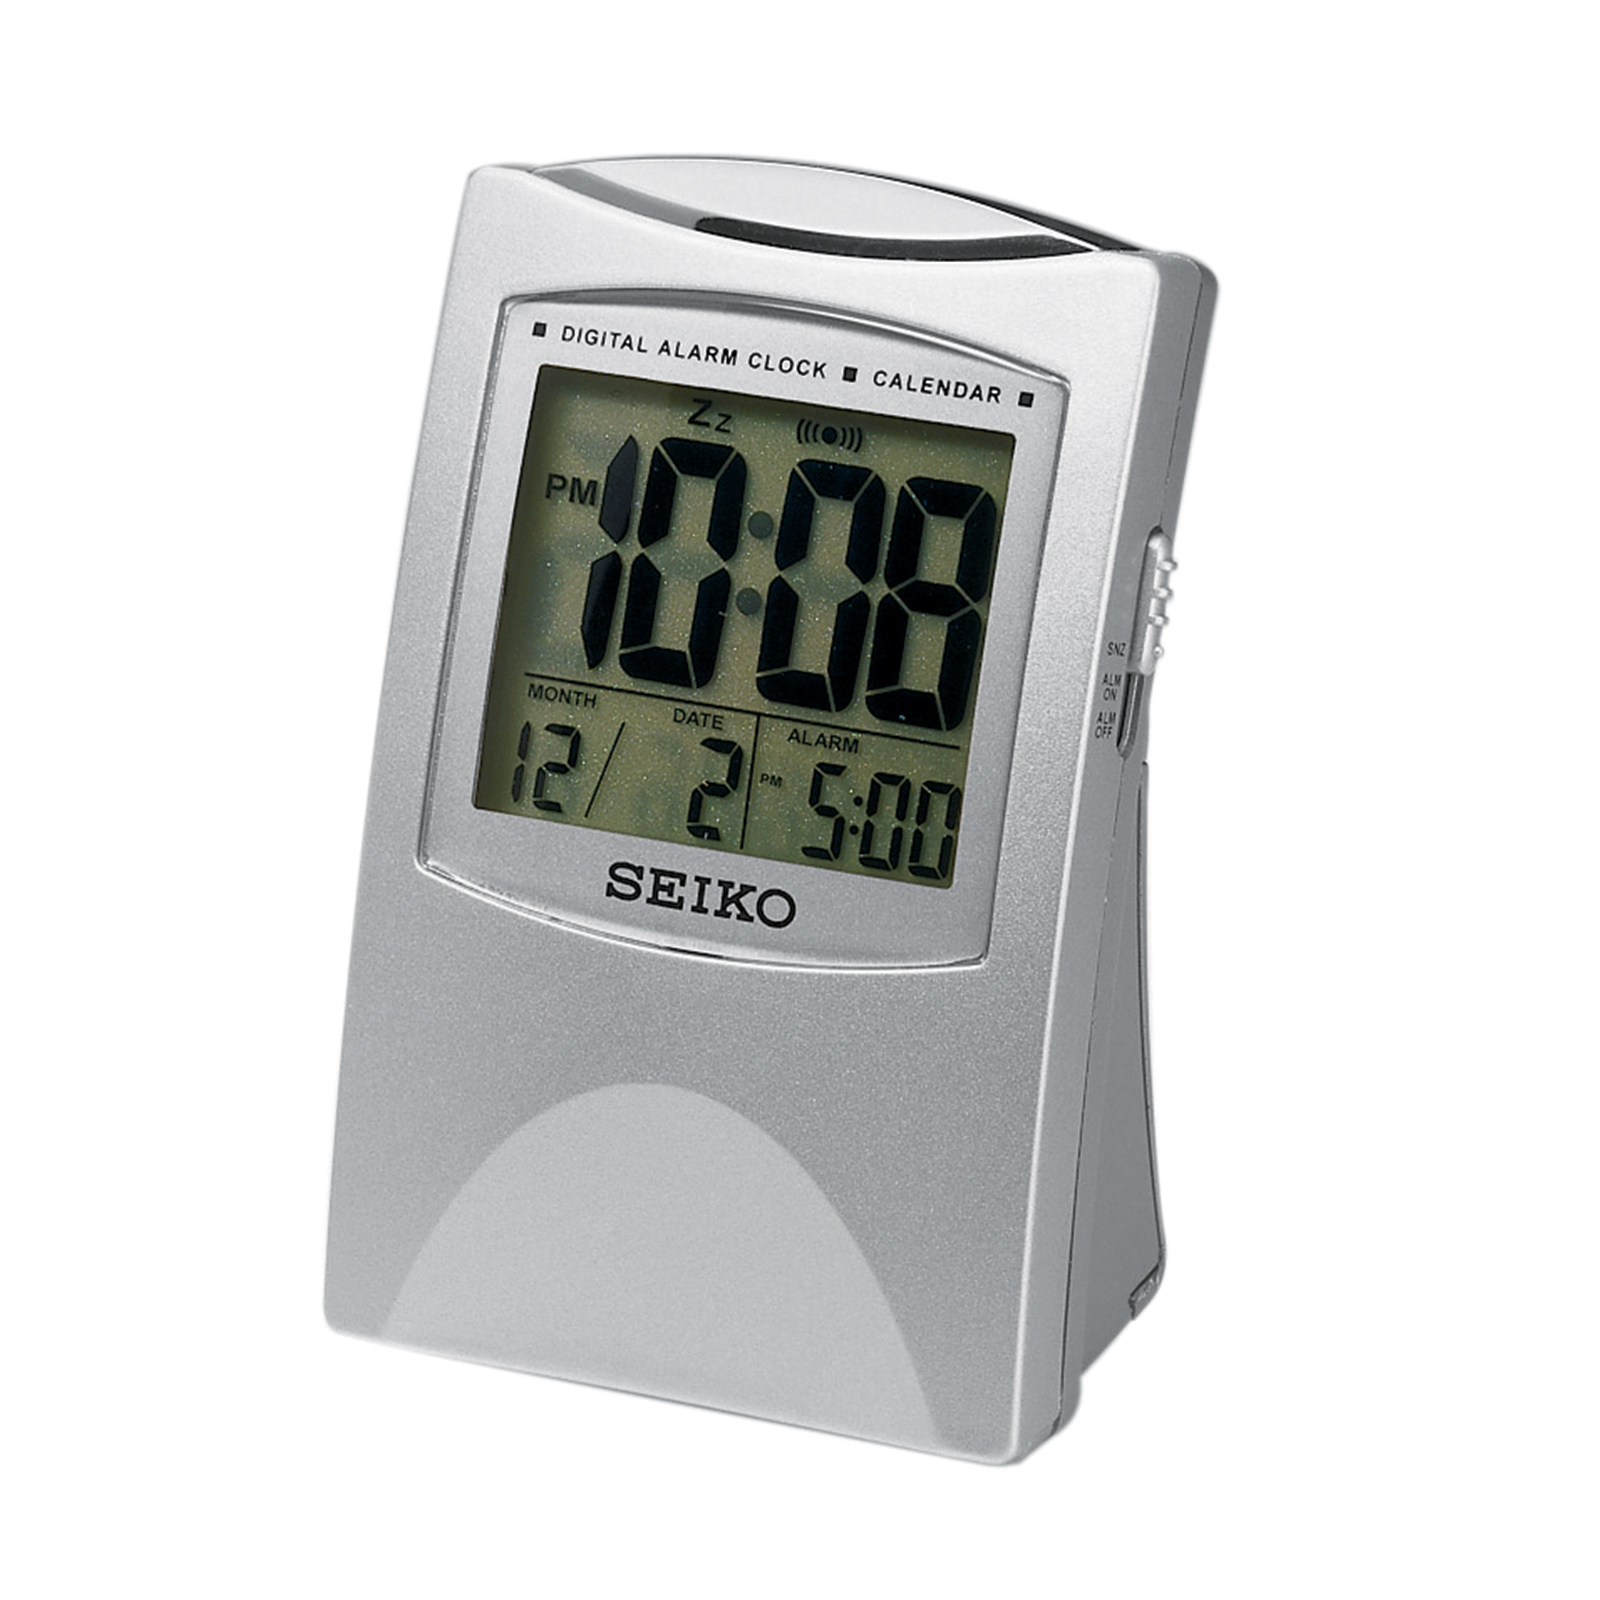 Bedside Alarm Clock Digital Seiko Bedside Alarm With Get Up And Glow Qhl005slh Shop